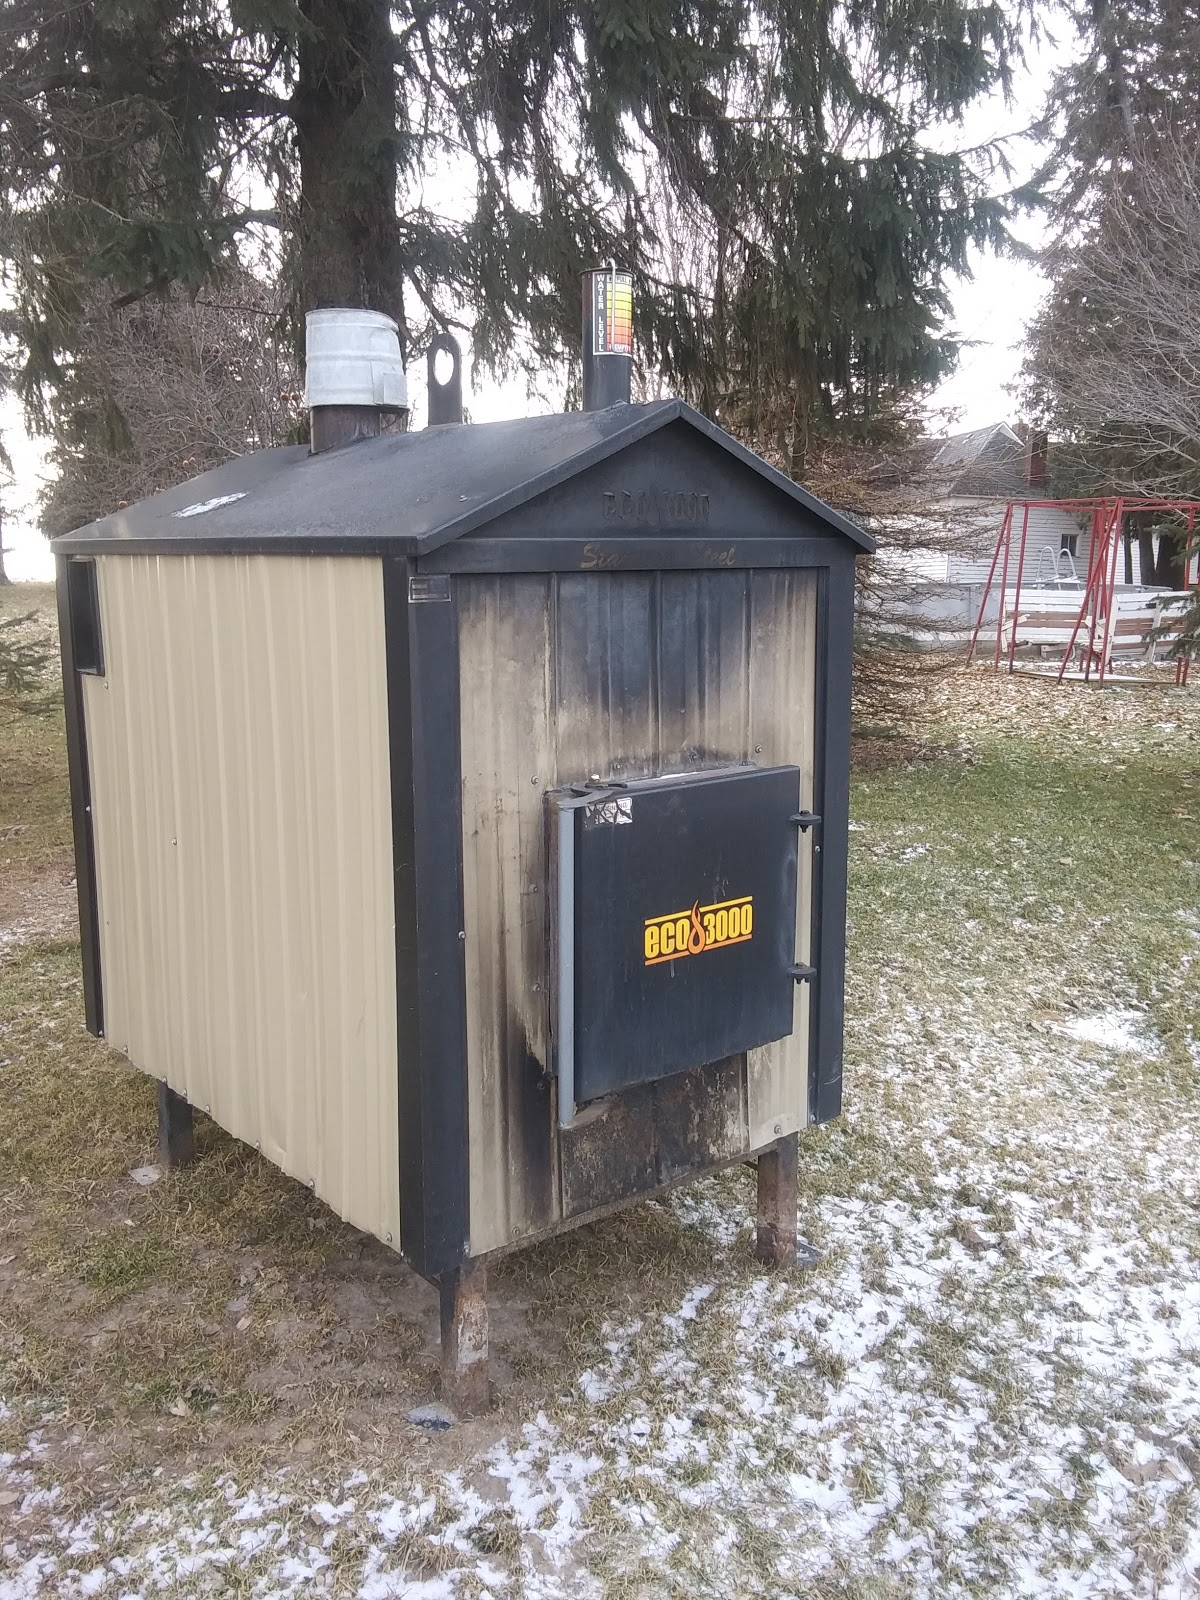 Eco 3000 Used Outdoor Wood Furnace Boiler